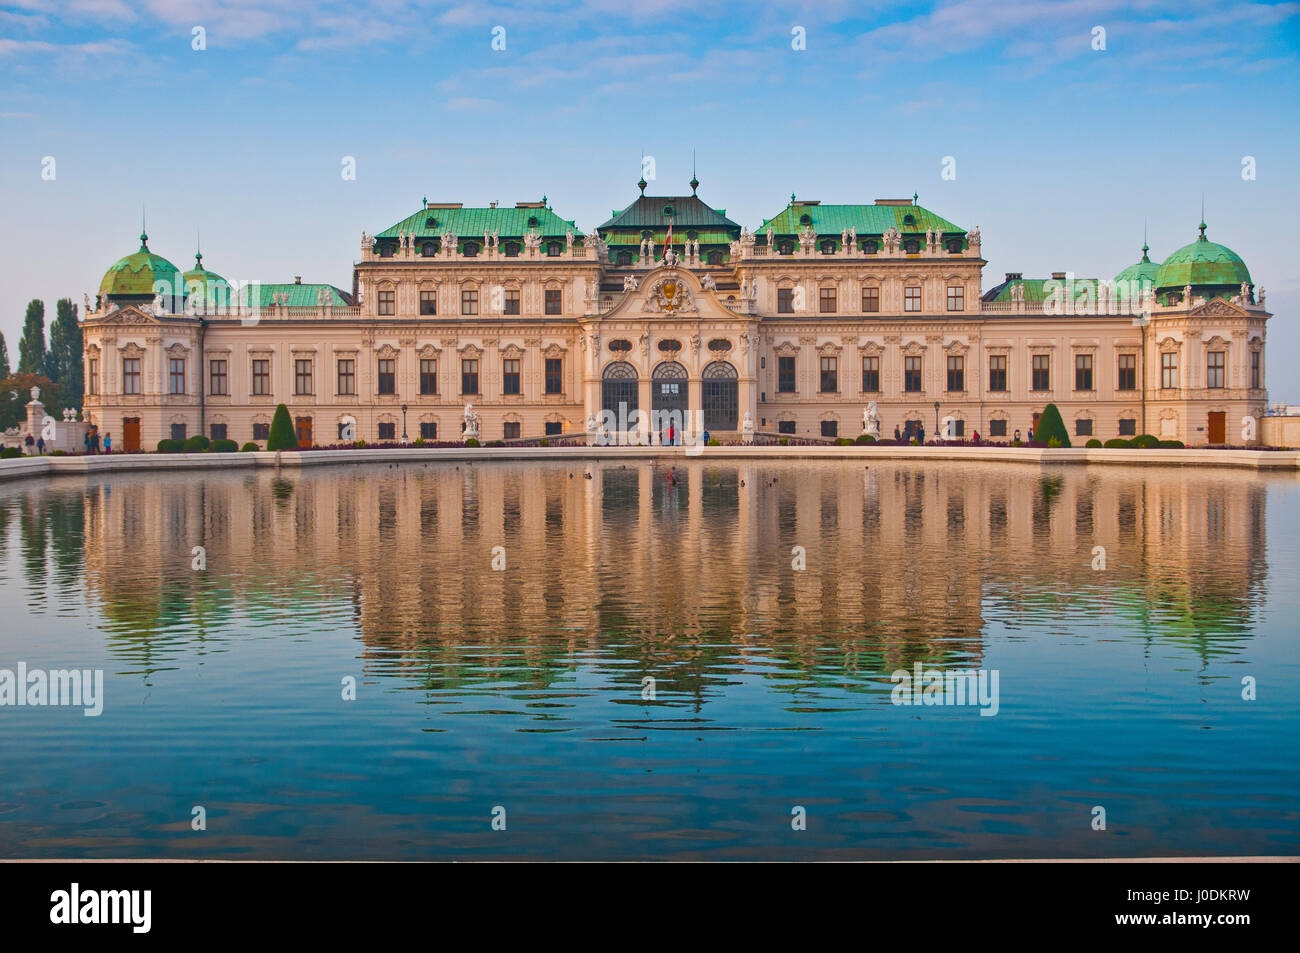 Beautiful view on Schoenbrunn palace in Vienna, Austria. - Stock Image